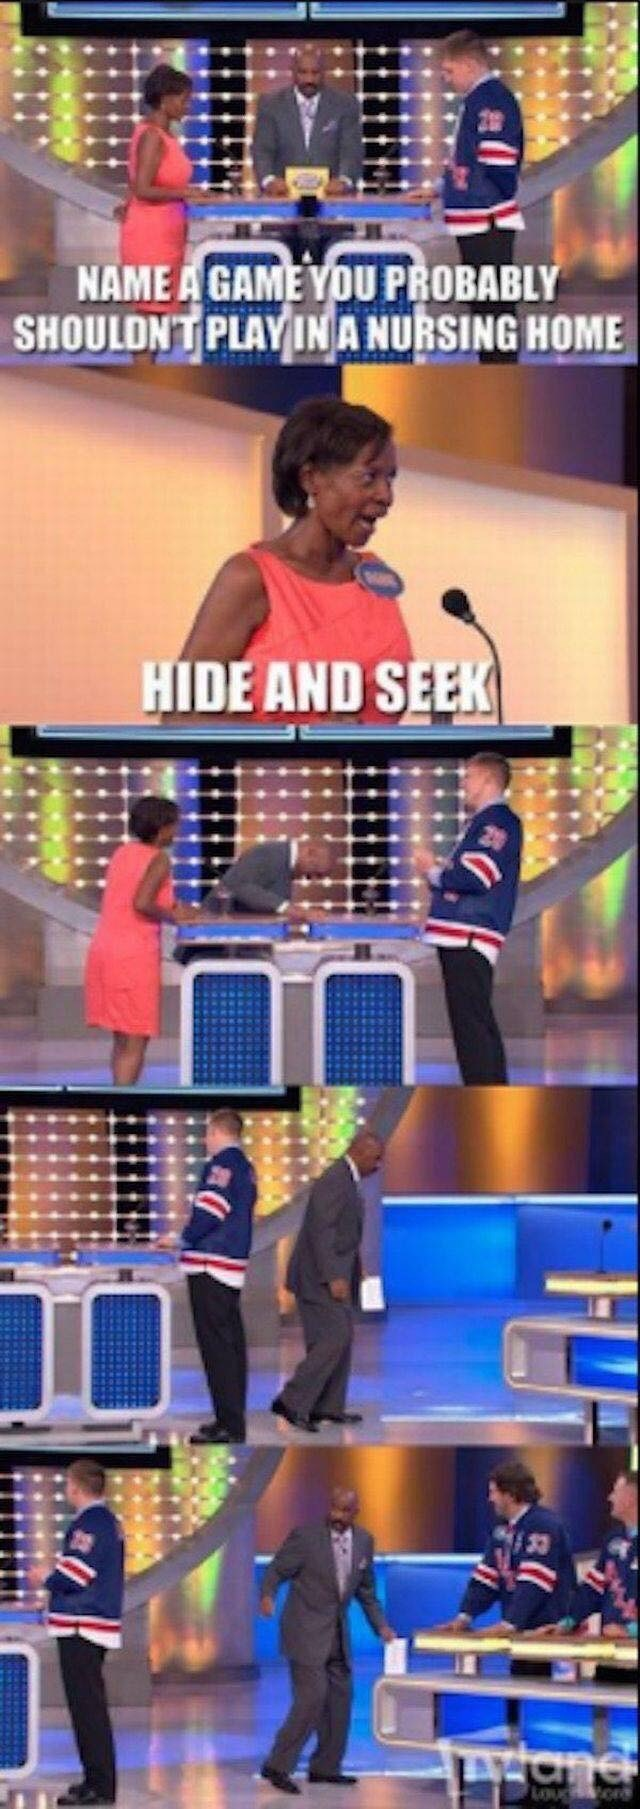 game show - Product - NAME A GAME YOU PROBABLY SHOULDNTPLAY INA NURSING HOME HIDE AND SEEK LYOnd auckions